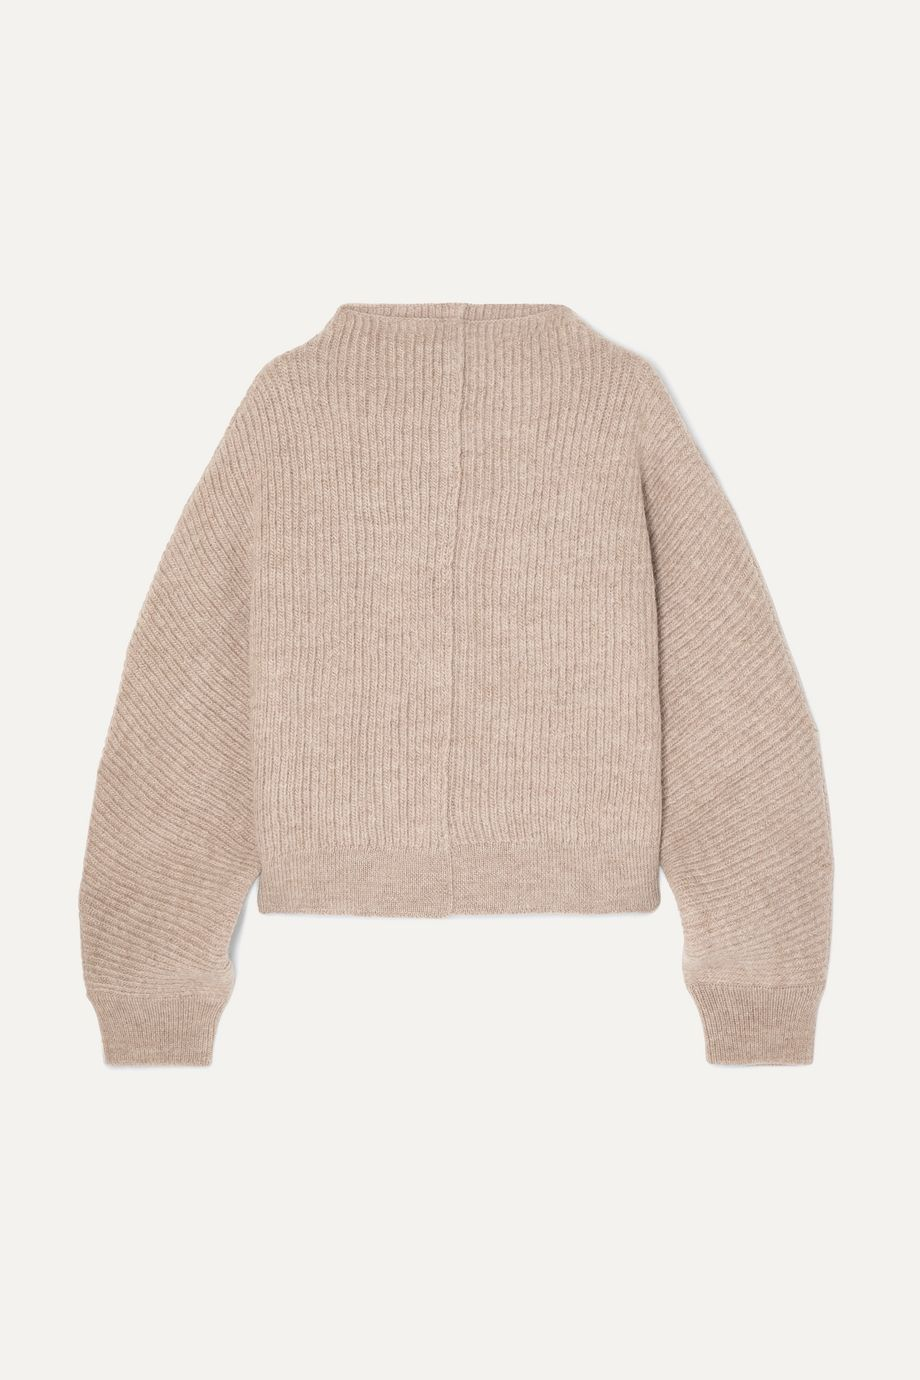 LE 17 SEPTEMBRE Ribbed wool sweater